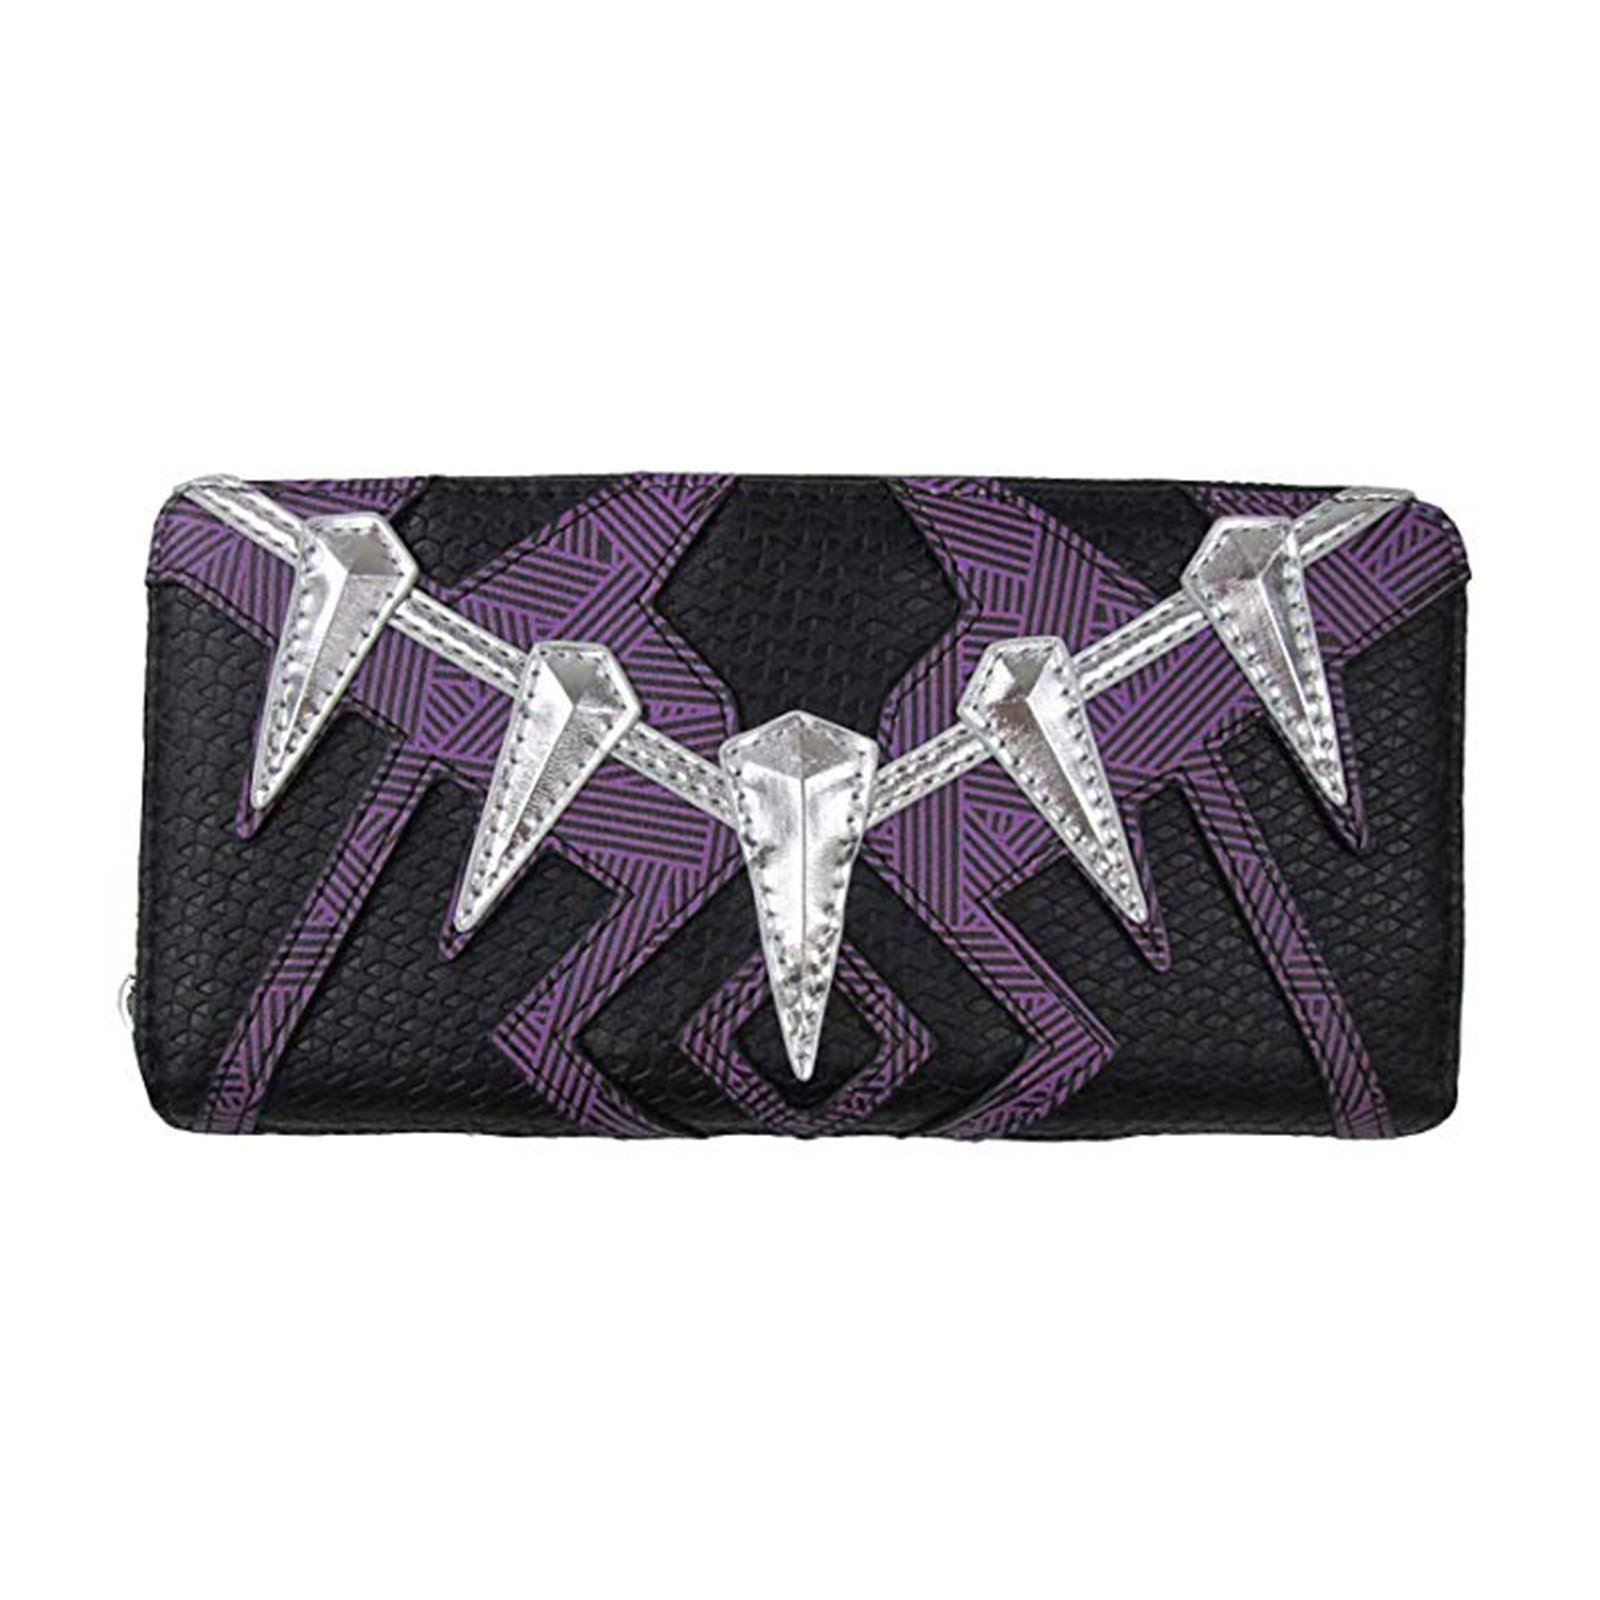 Loungefly: Black Panther - Costume Zip-Around Wallet image